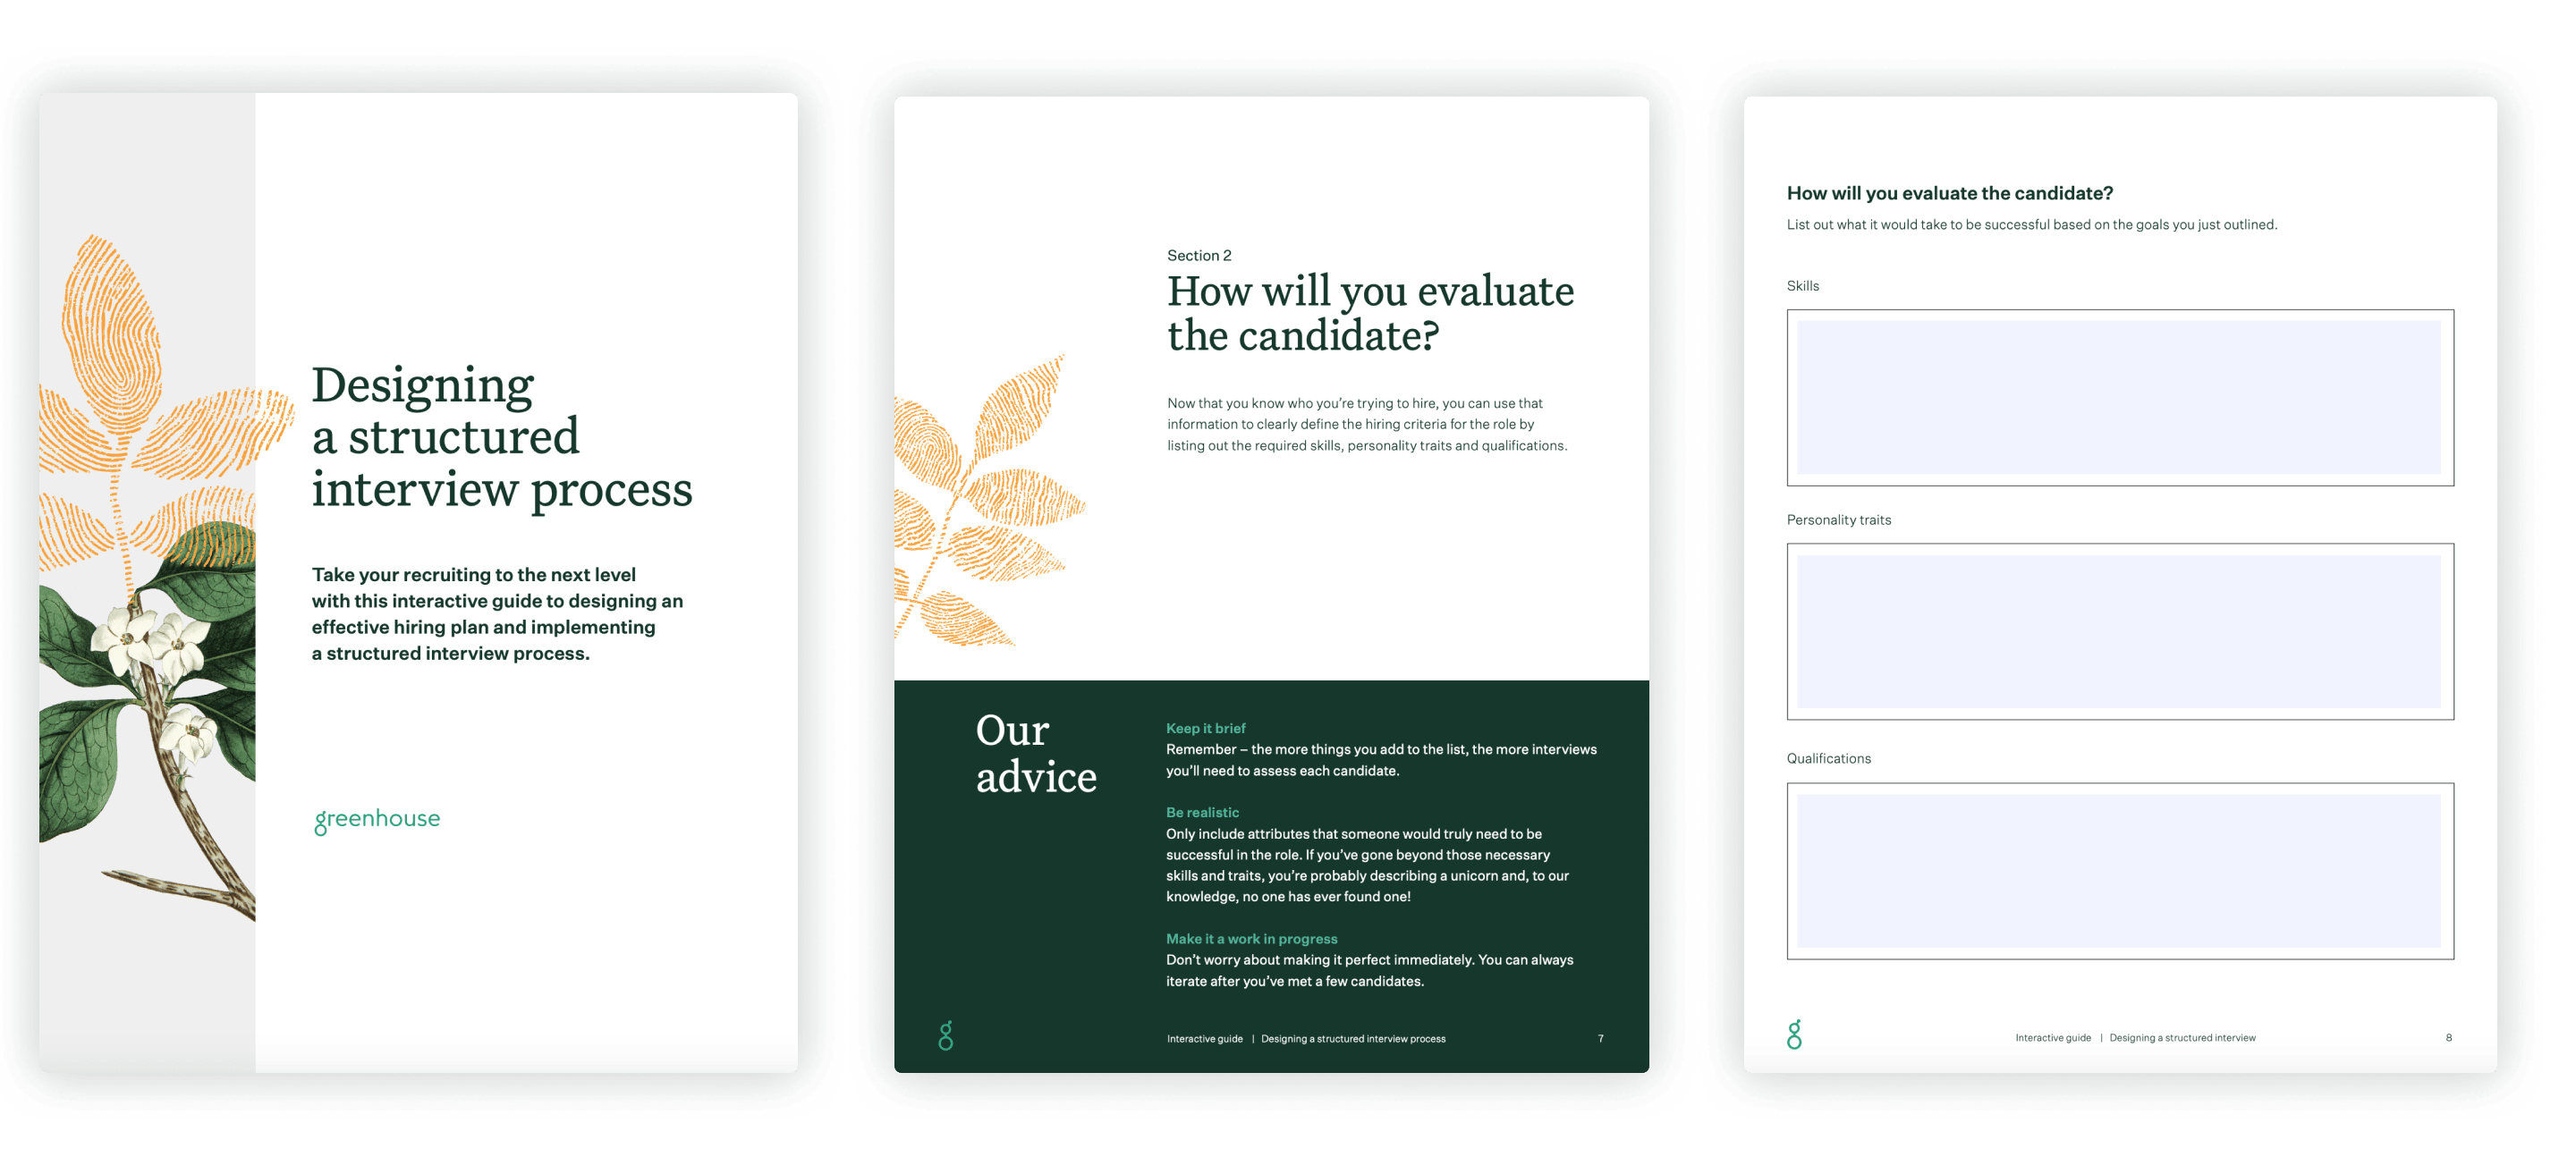 Sample pages of designing a structured interview process workbook